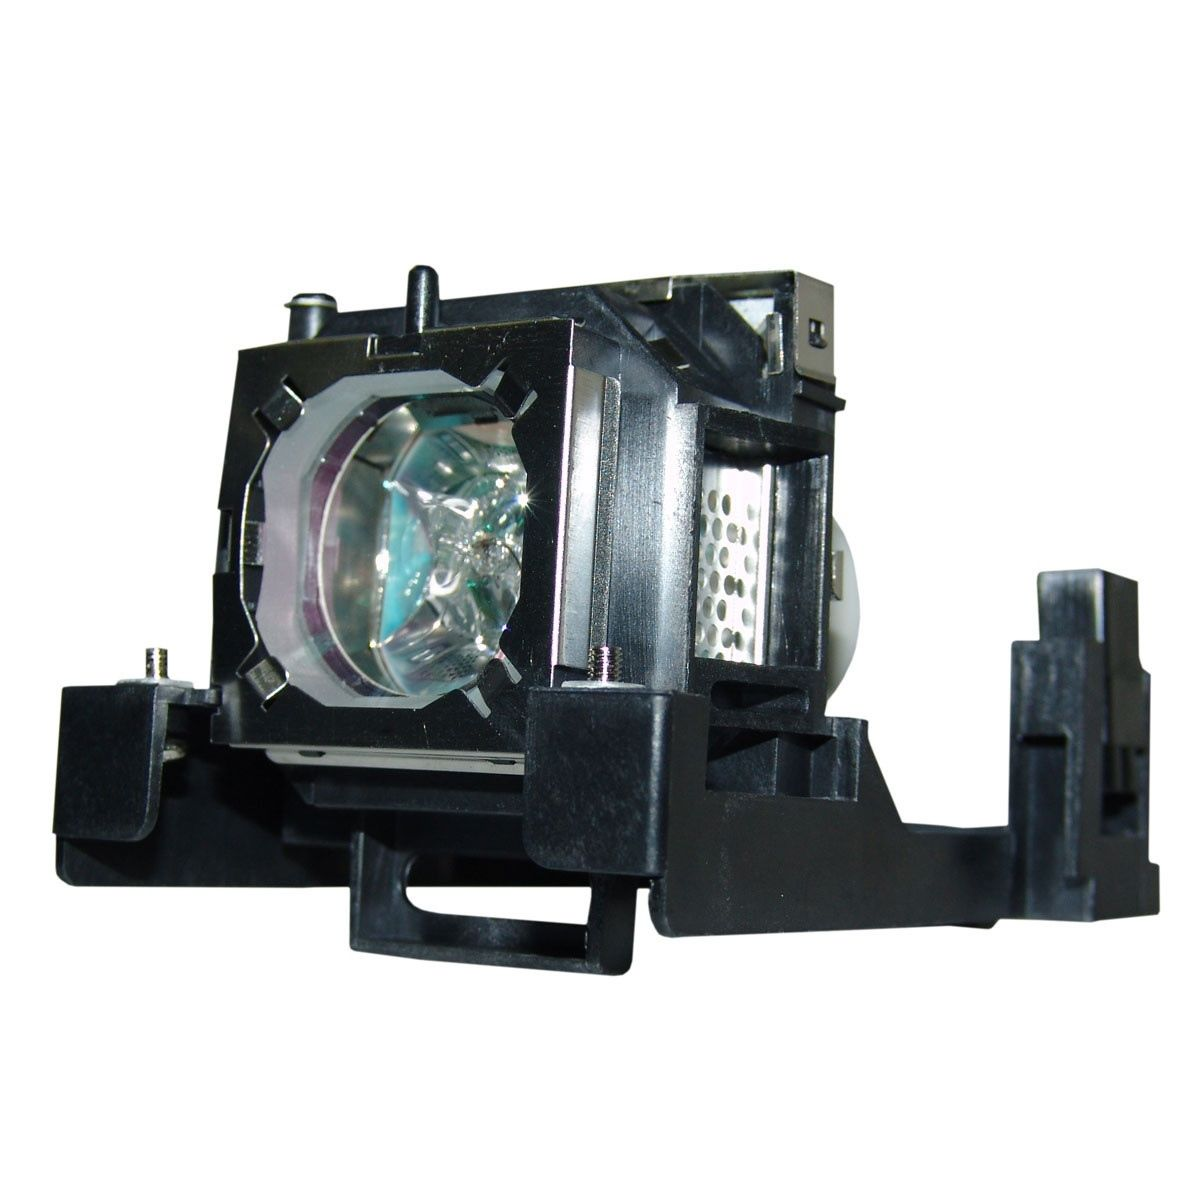 projector Lamp Bulb ET-LAT100 ETLAT100 LAT100 for Panasonic PT-TW230 PT-TW231R PT-TW230EA PT-TW231REA with housing et lab10 replacement projector bulb lamp with housing for panasonic pt u1x68 ptl lb20su pt u1x67 pt u1x88 pt px95 pt lb20